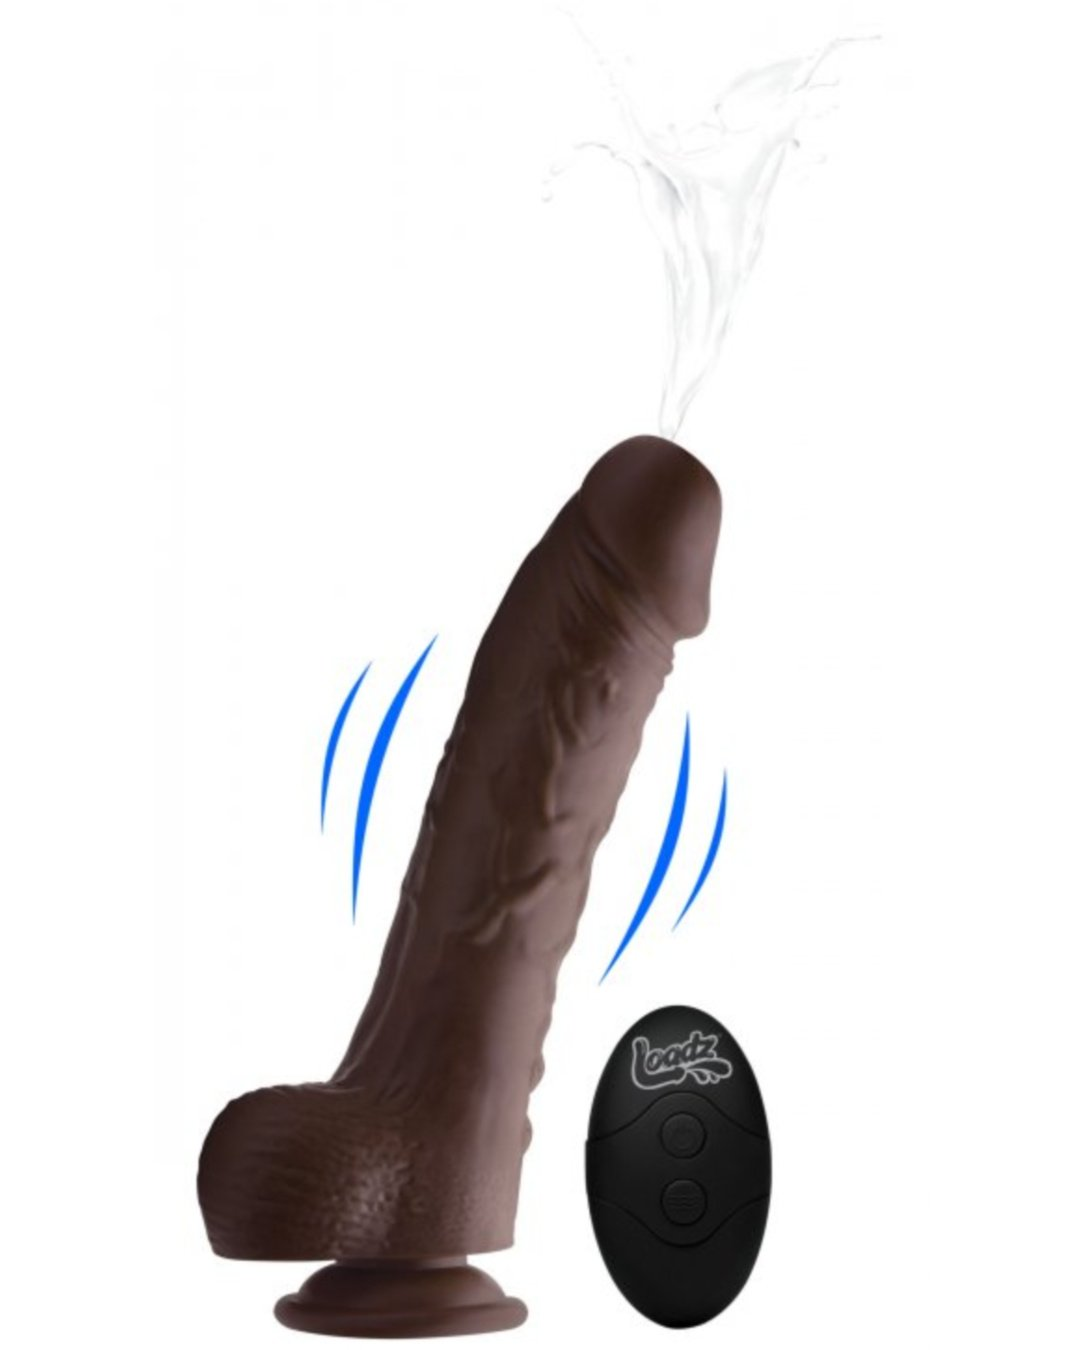 Loadz 7 Inch Vibrating Squirting Dildo with Wireless Remote Control - Chocolate showing the vibrating and squirting functions